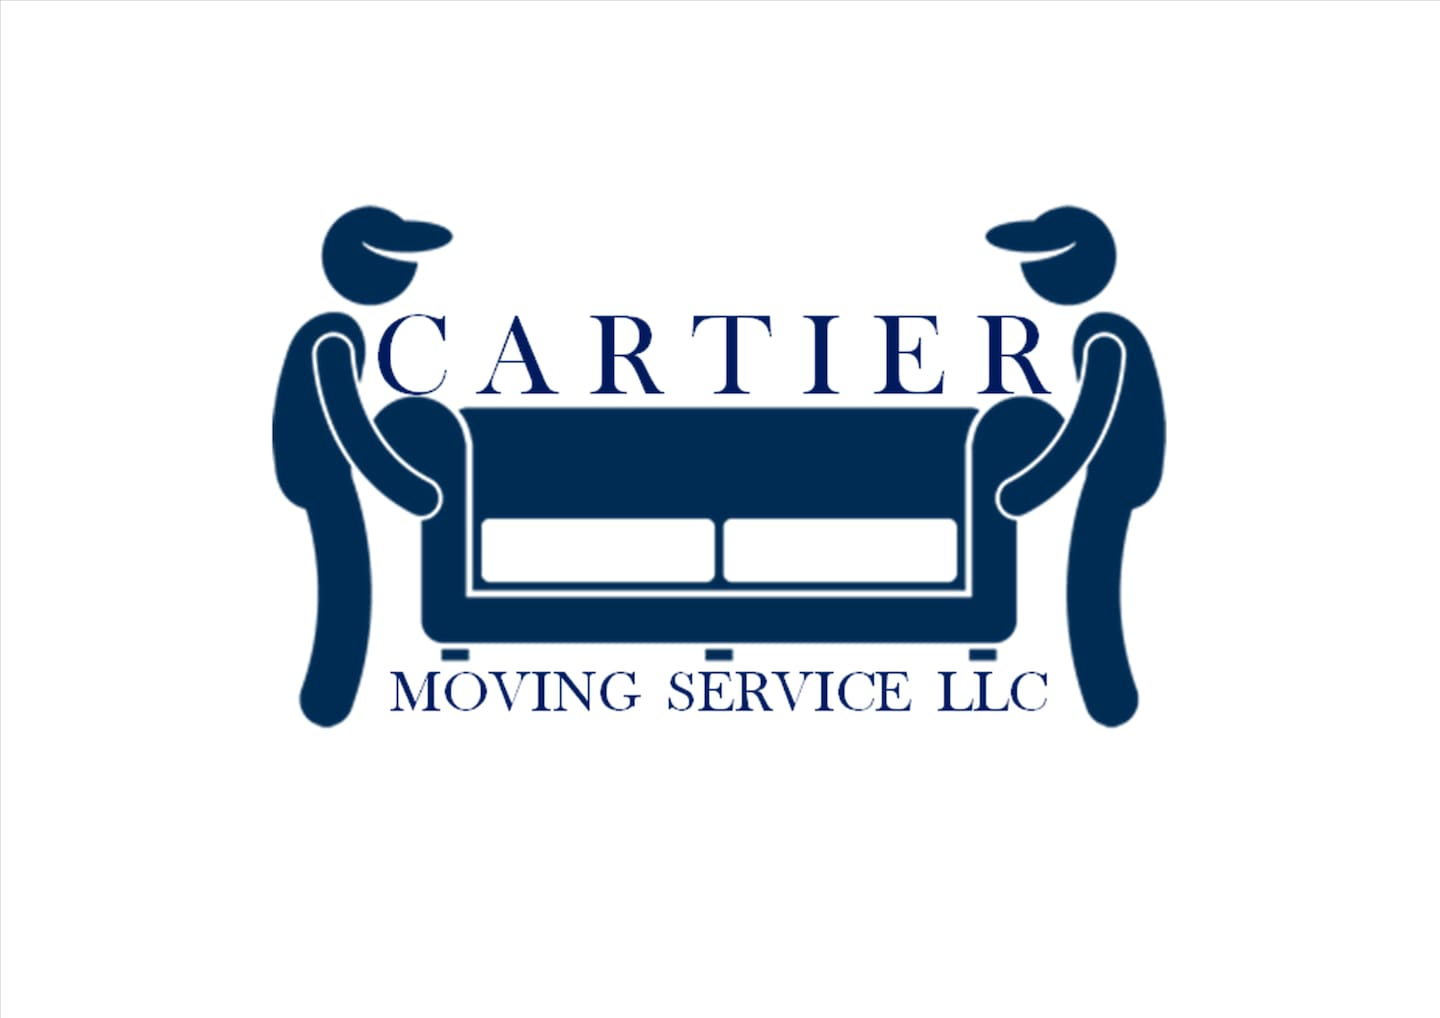 Cartier moving servicing